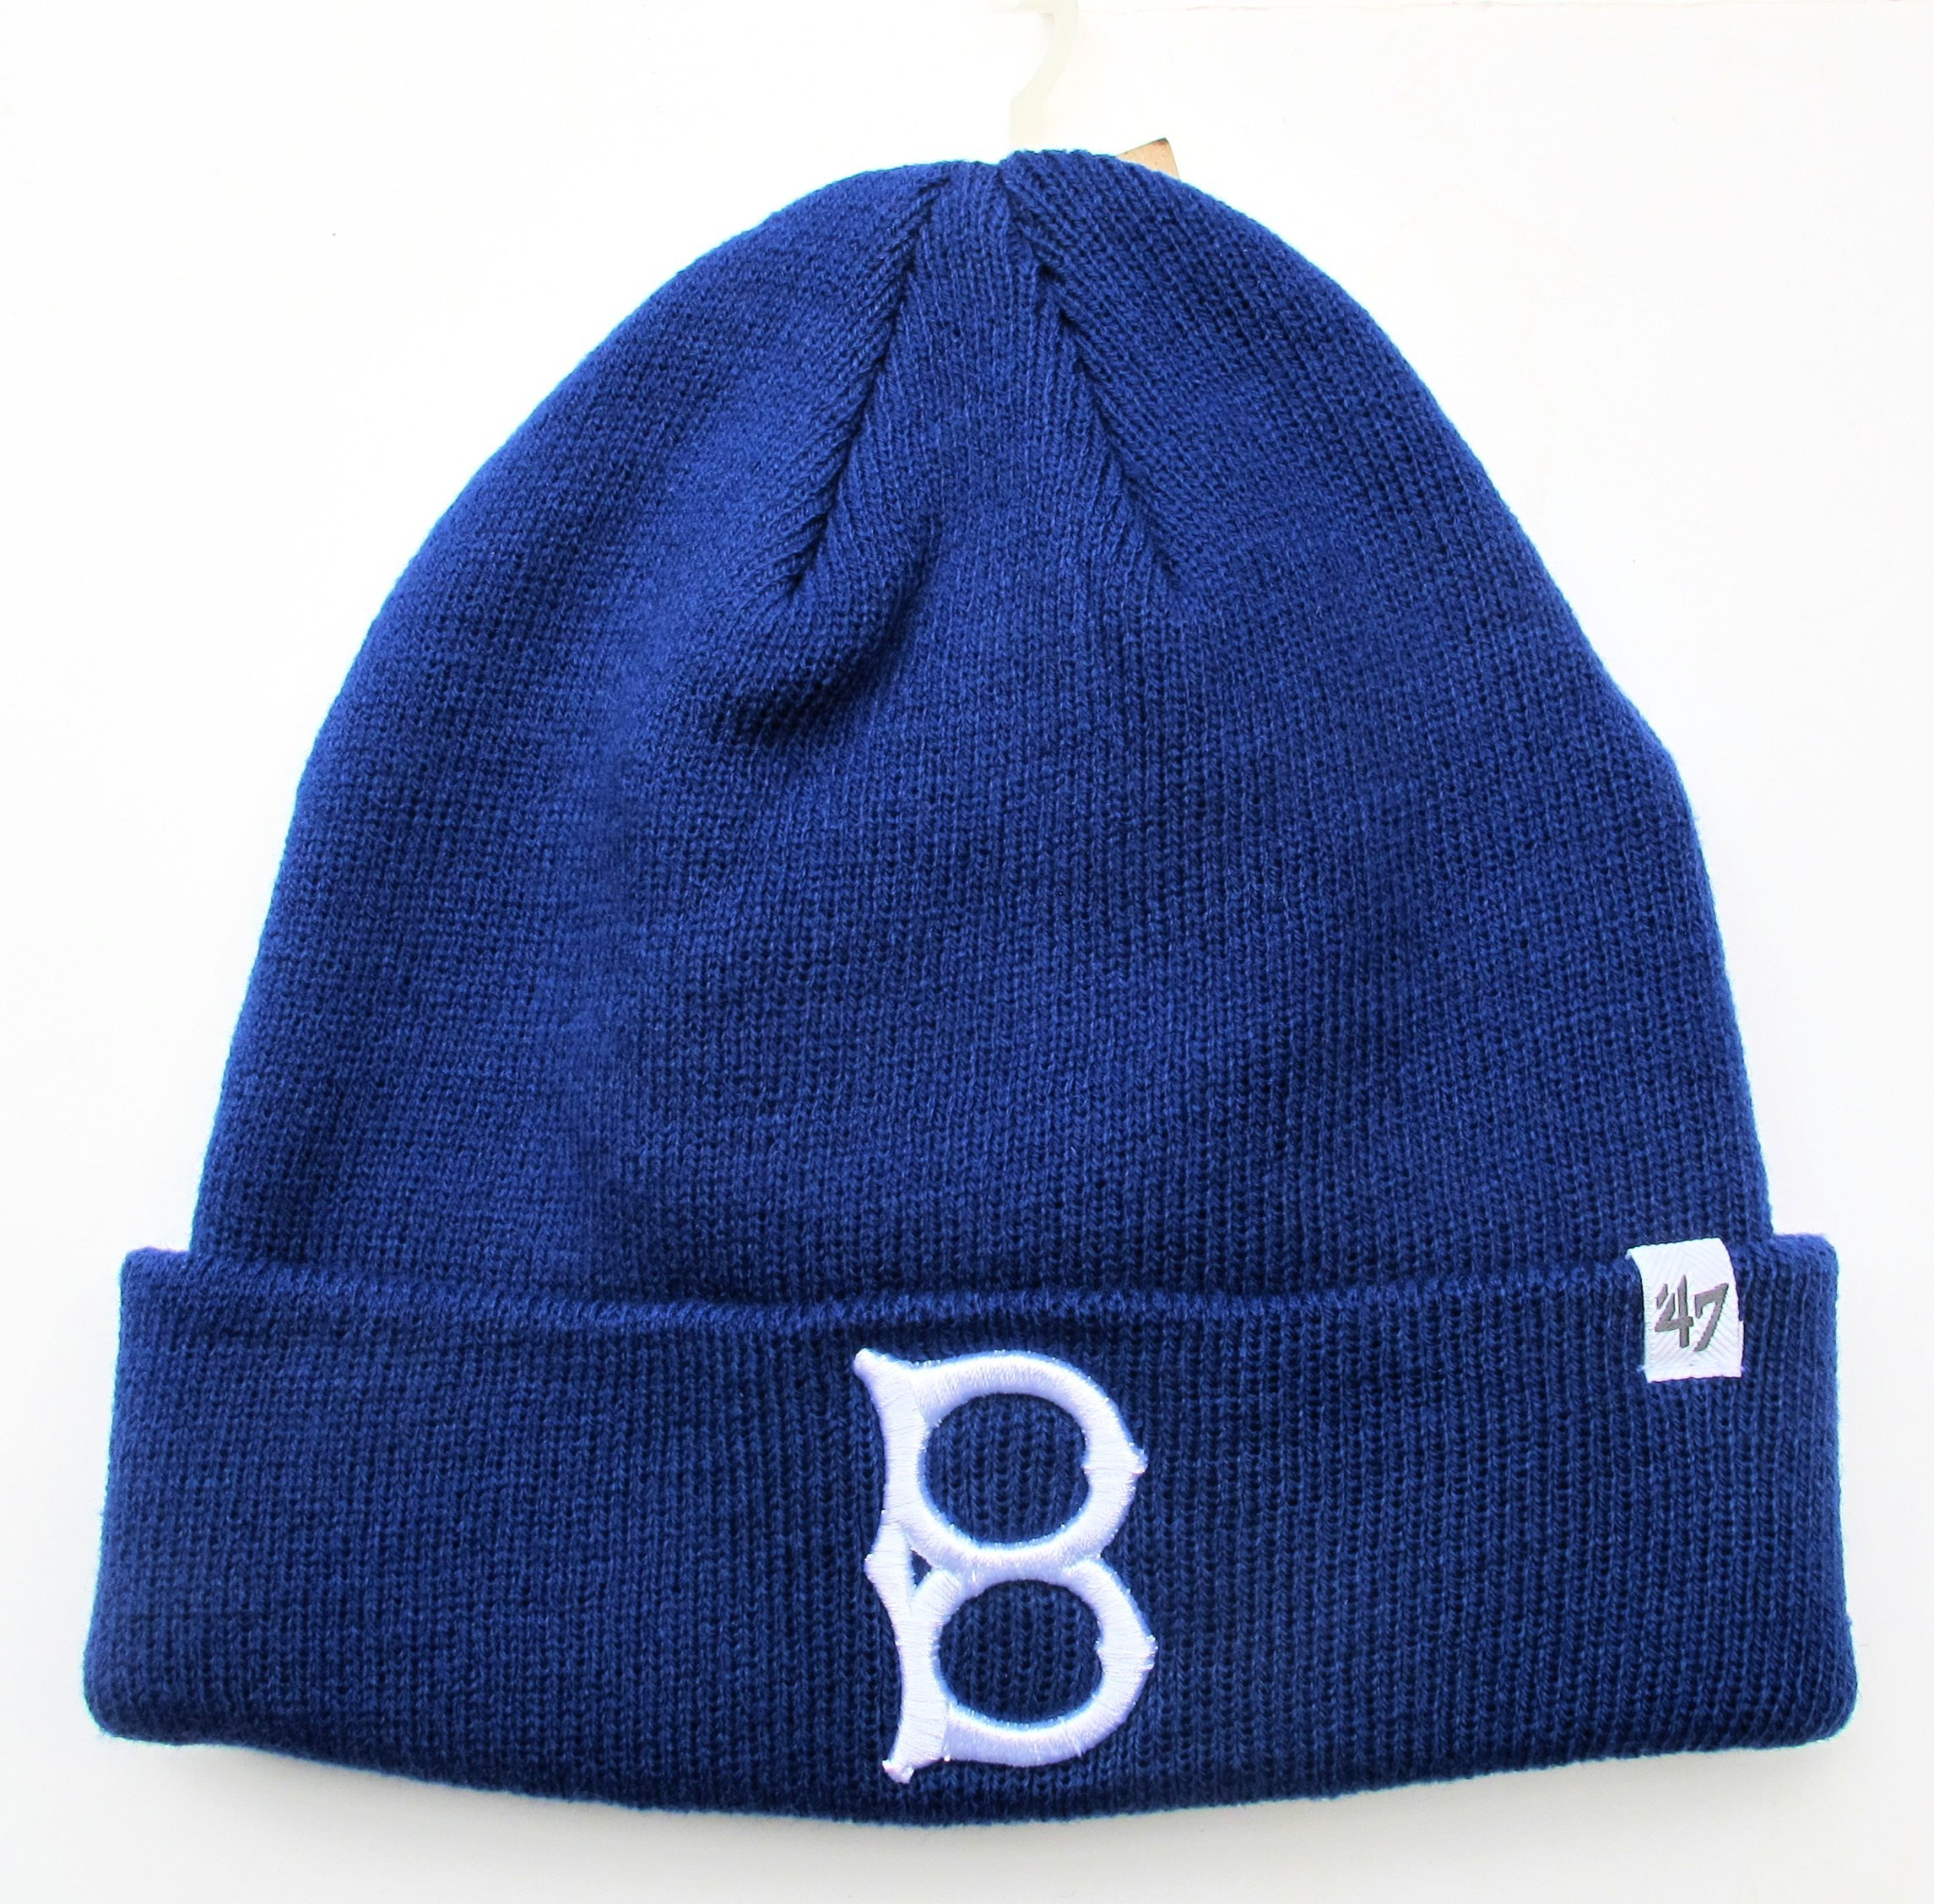 082eef9e Buy 47 Brand MLB Brooklyn Dodgers Cuff Knit Beanie in Cheap Price on ...